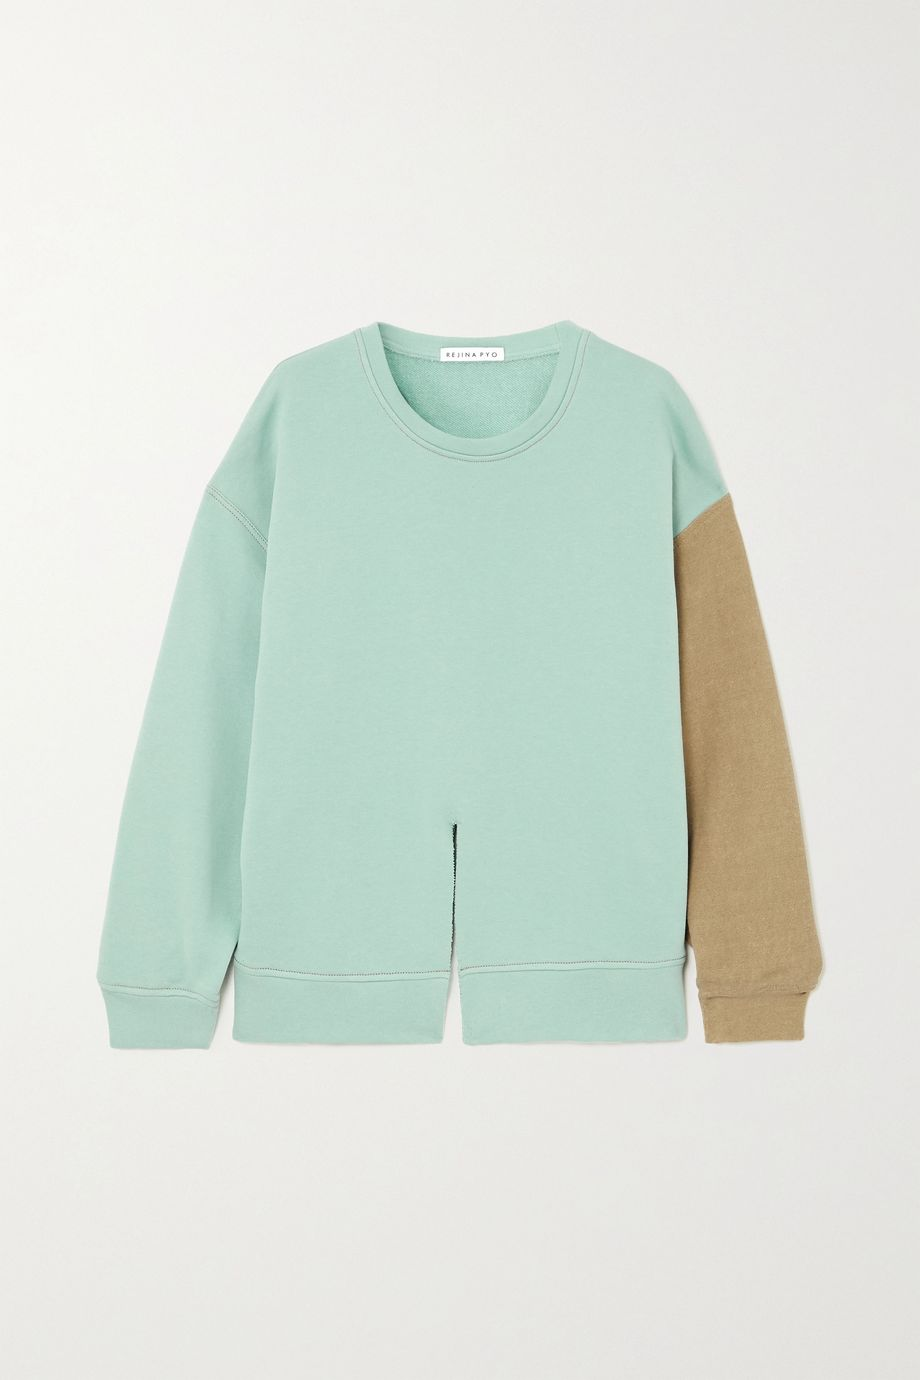 REJINA PYO Charlie two-tone cotton-jersey sweatshirt